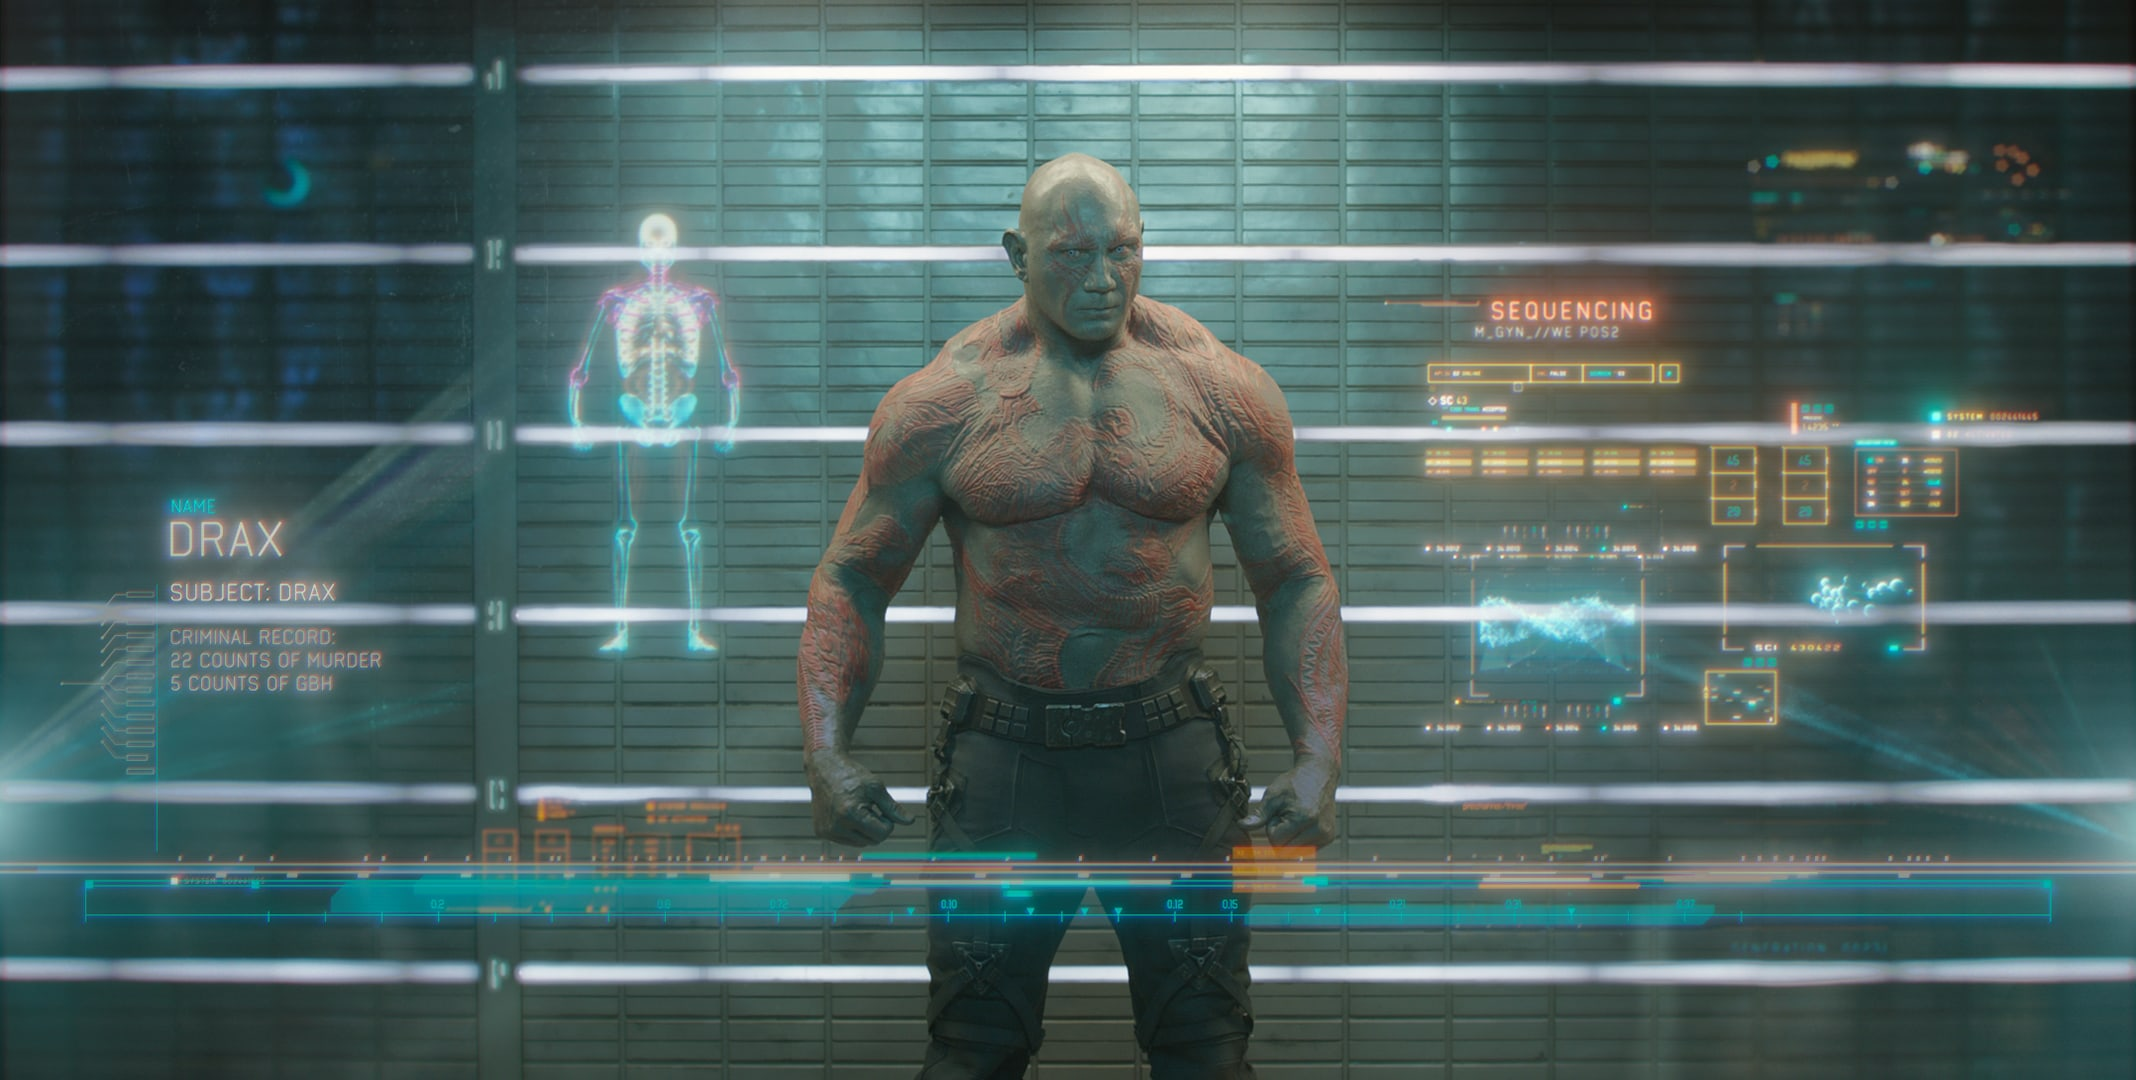 Dave Bautista as Drax in the movie Guardians of the Galaxy